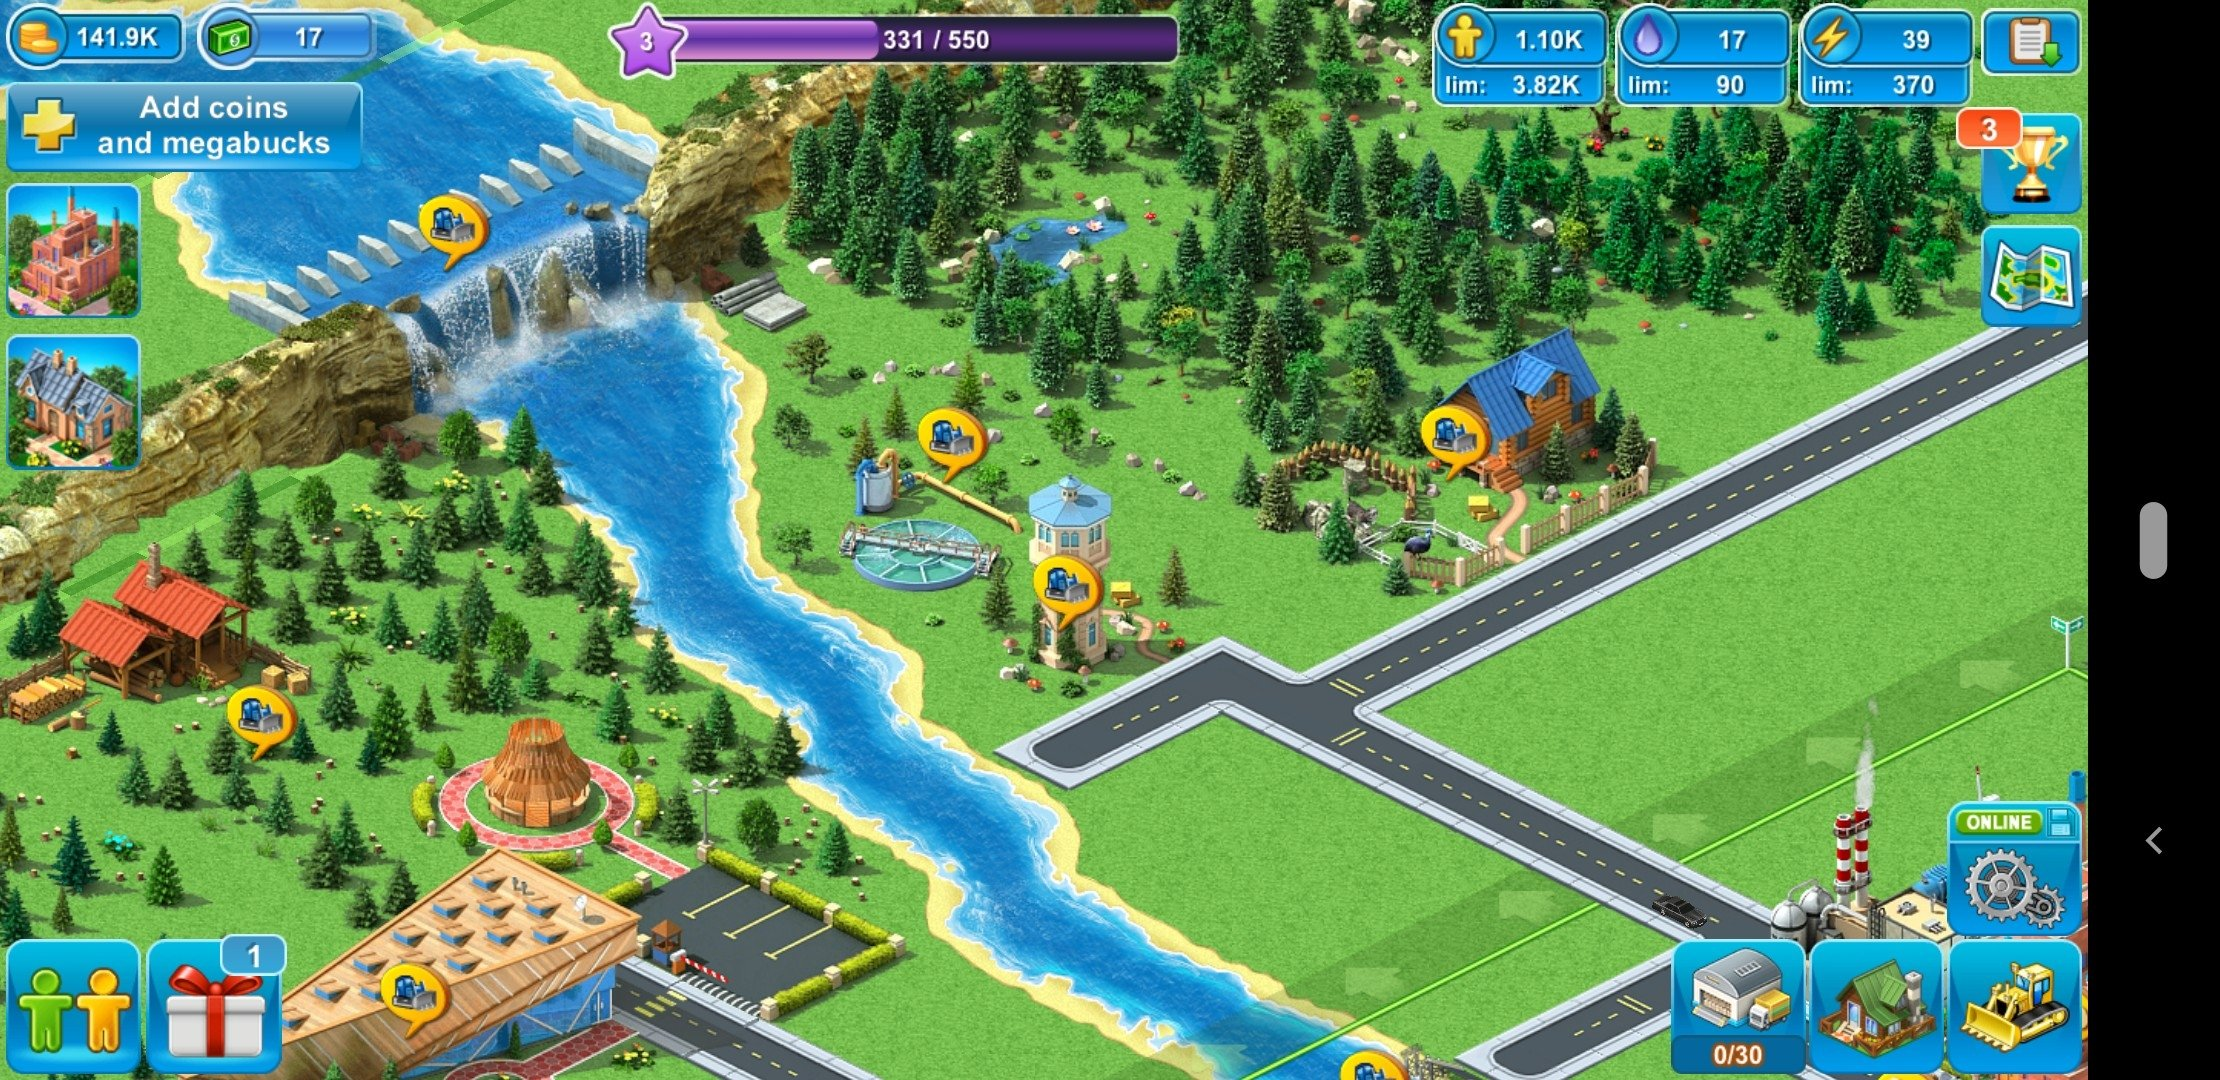 Megapolis Android image 5